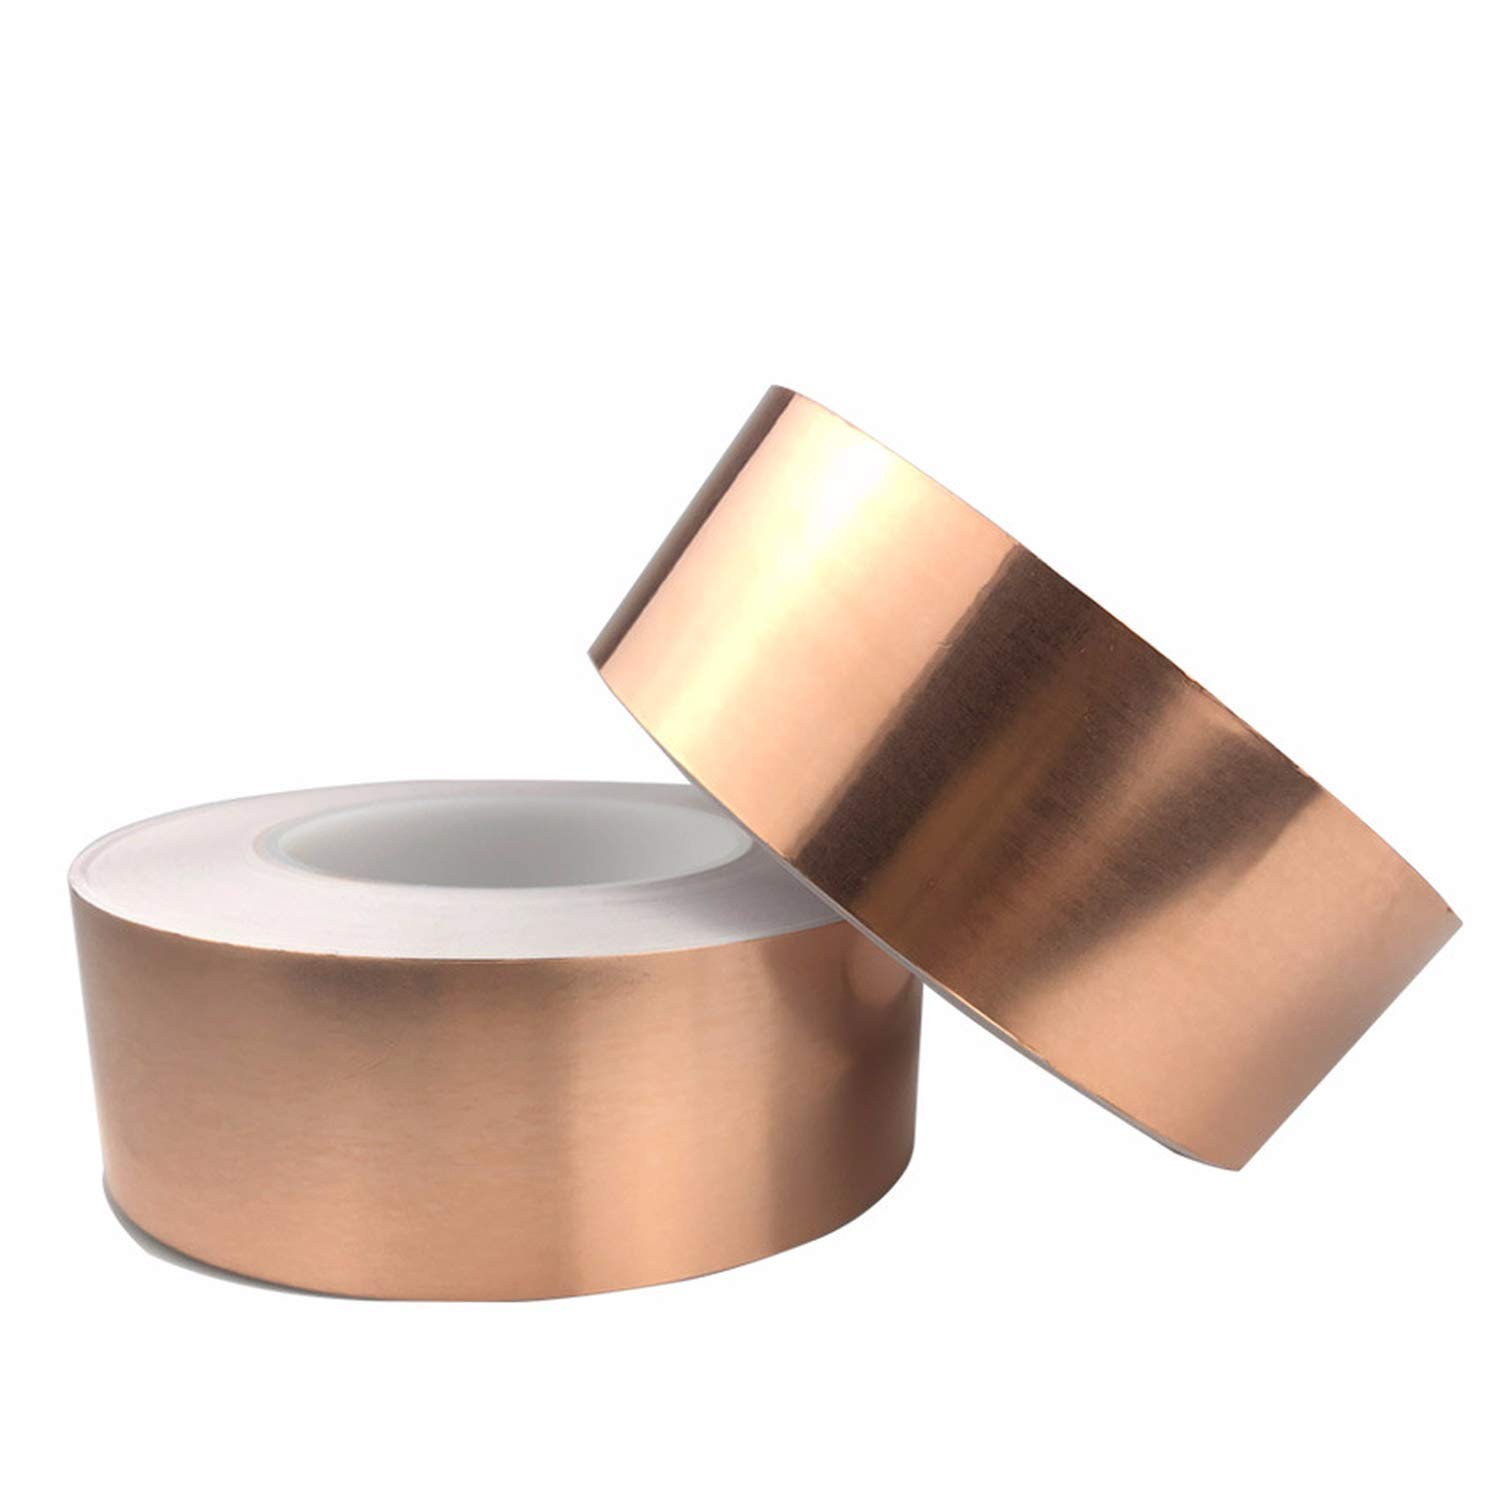 Copper Foil Tape with Single Sided Conductive Adhesive 2/4/6 Rolls (20/25/30/50mmx20m) - Electrical Repairs, Slug Repellent, EMI Shielding, Stained Glass, Crafts, Grounding (2-Roll,25mm x 11yard)